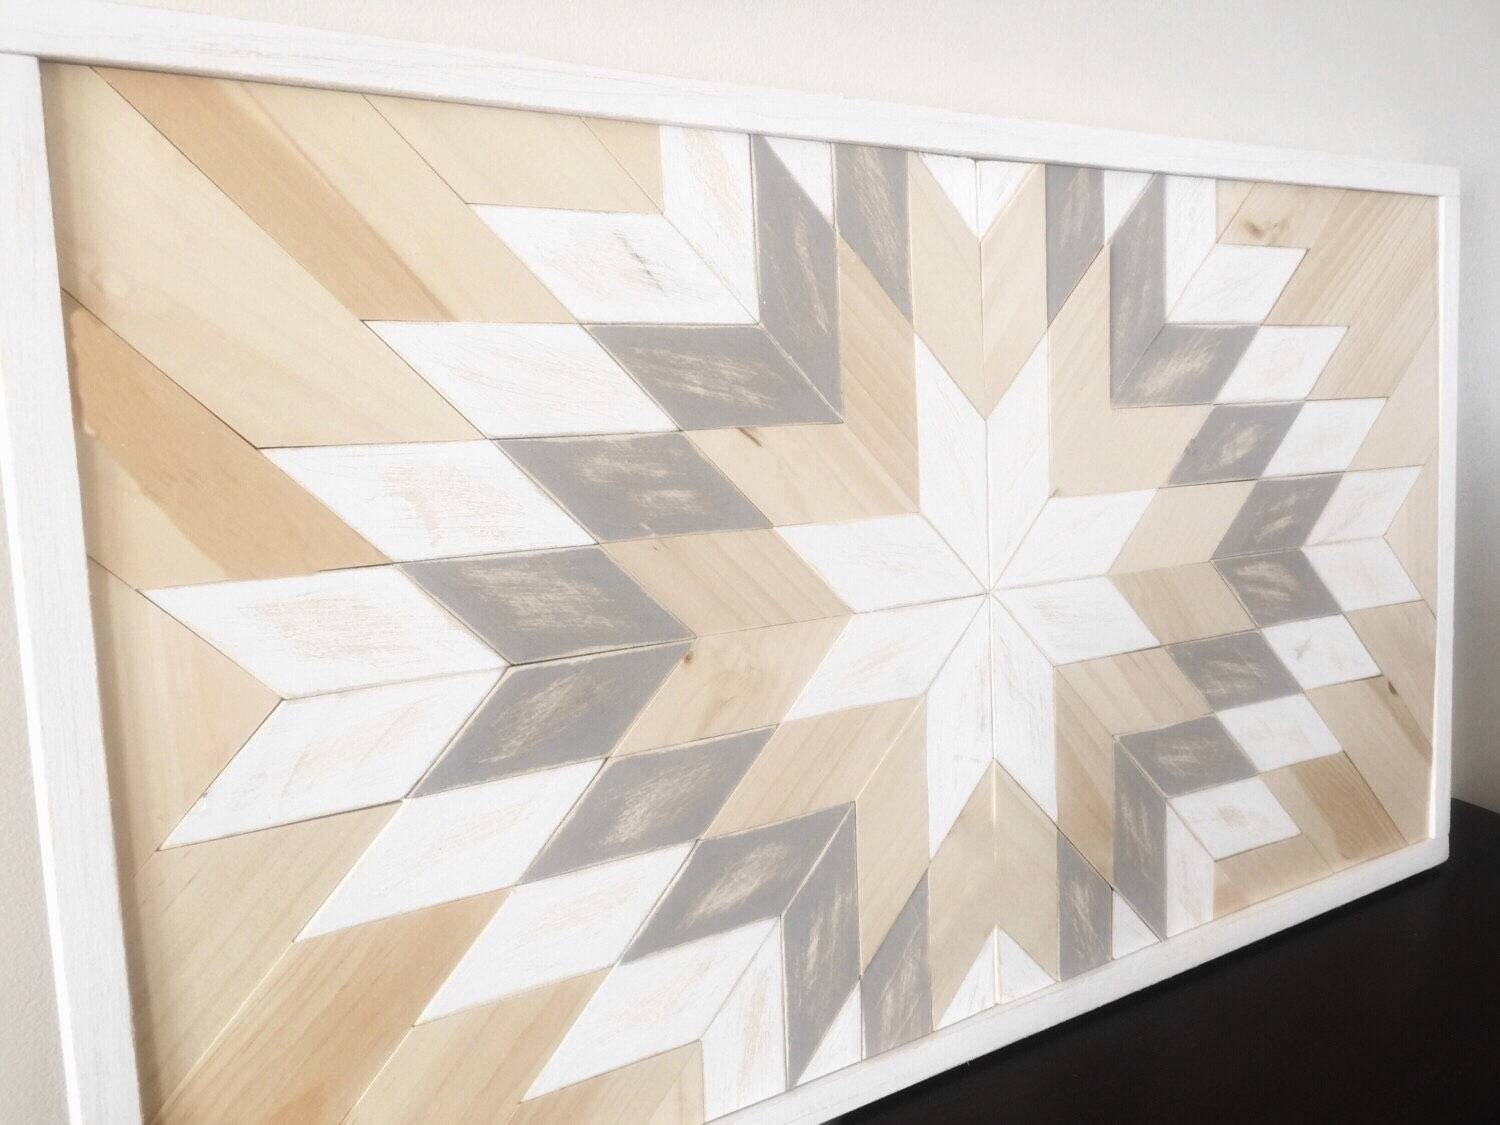 Reclaimed Wood Wall Art – Sunburst In White In Most Up To Date White Wooden Wall Art (View 20 of 20)